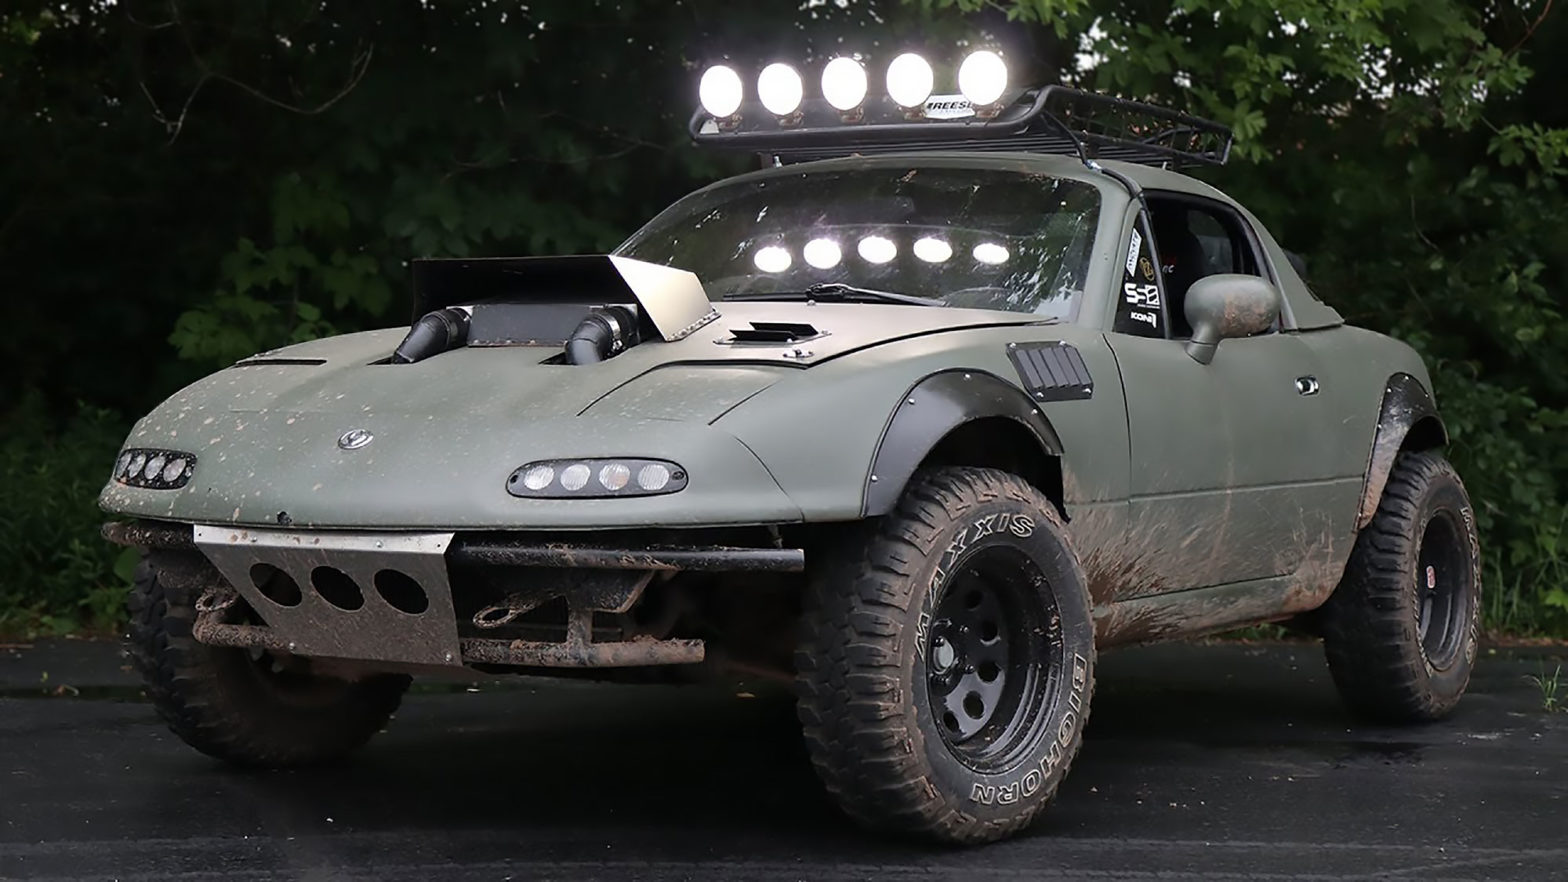 Custom Rally Miata by Gingium